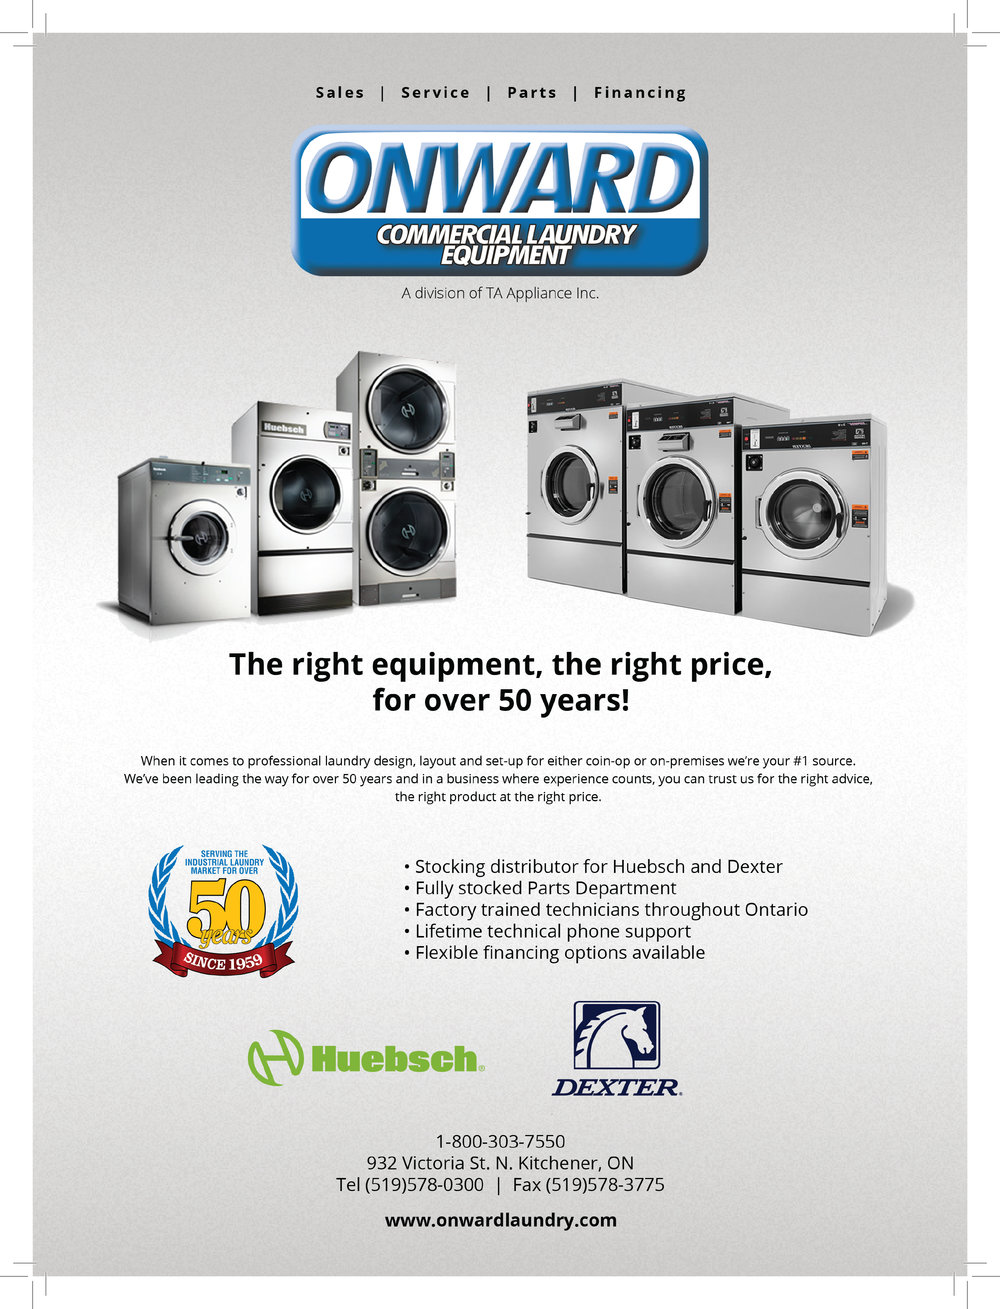 ONWARD FABRICARE NEW AD 3.0 copy.jpg